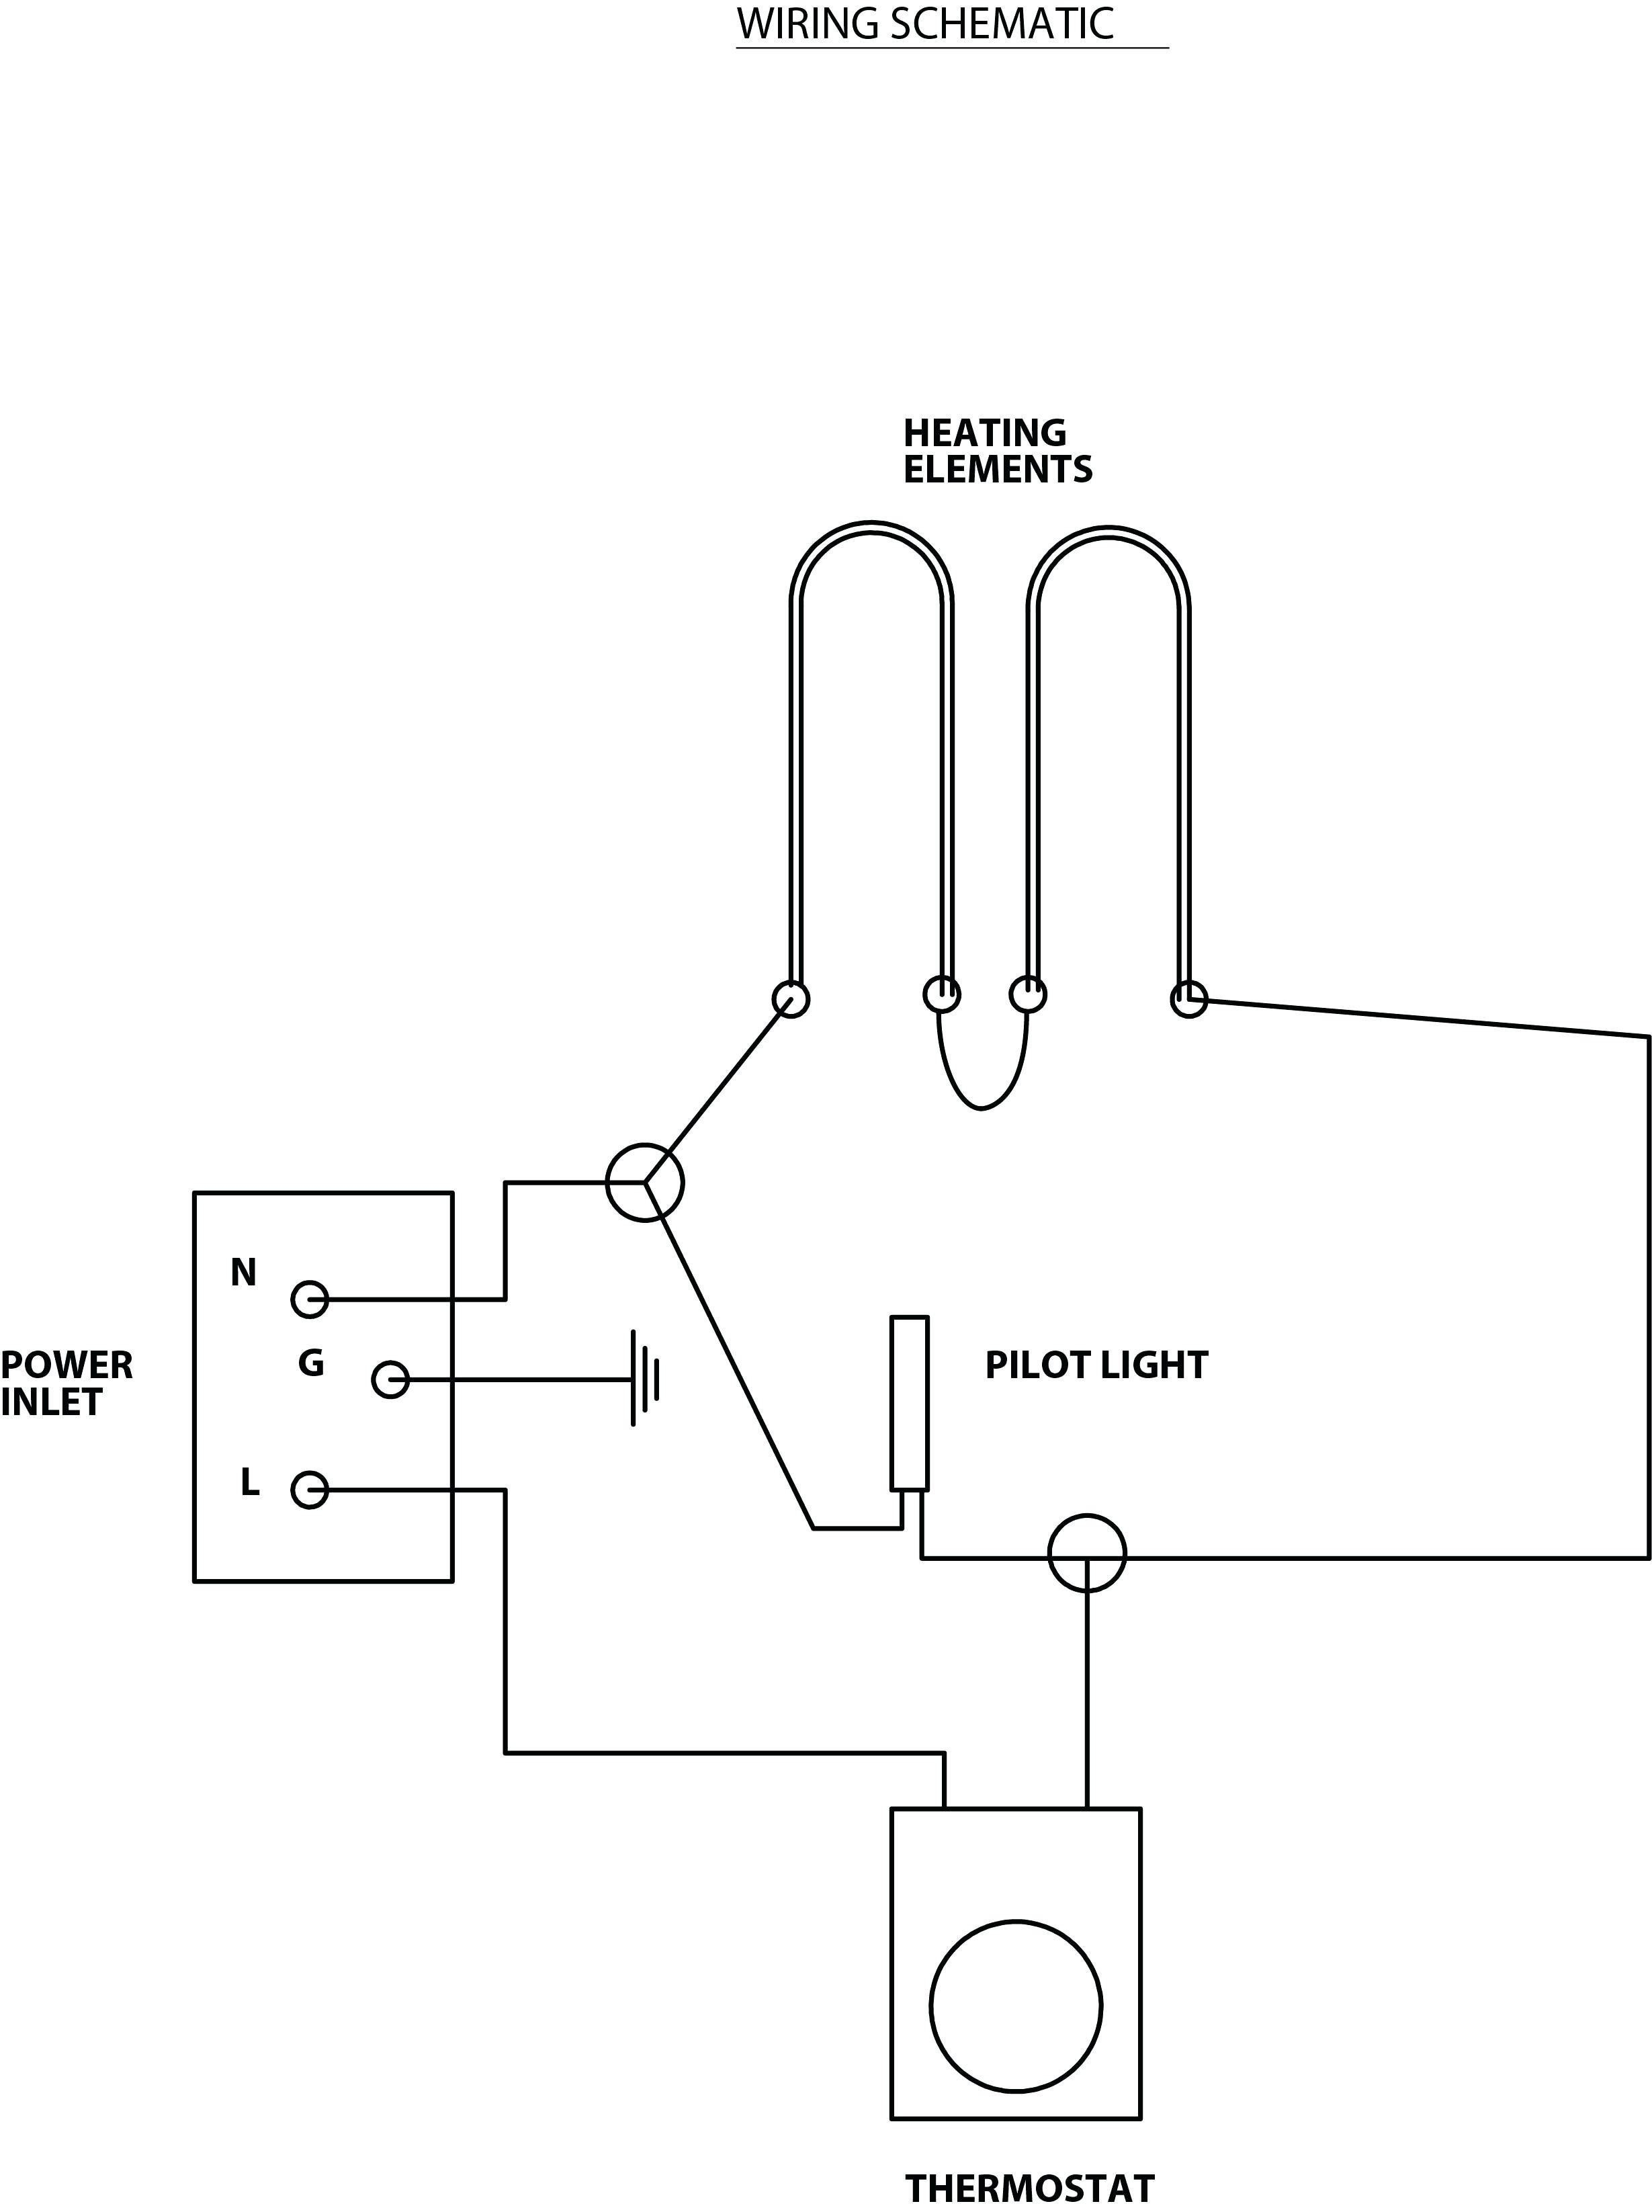 Heater Diagram Water Wiring Whirlpool Ee2h40rd | Wiring Diagram on